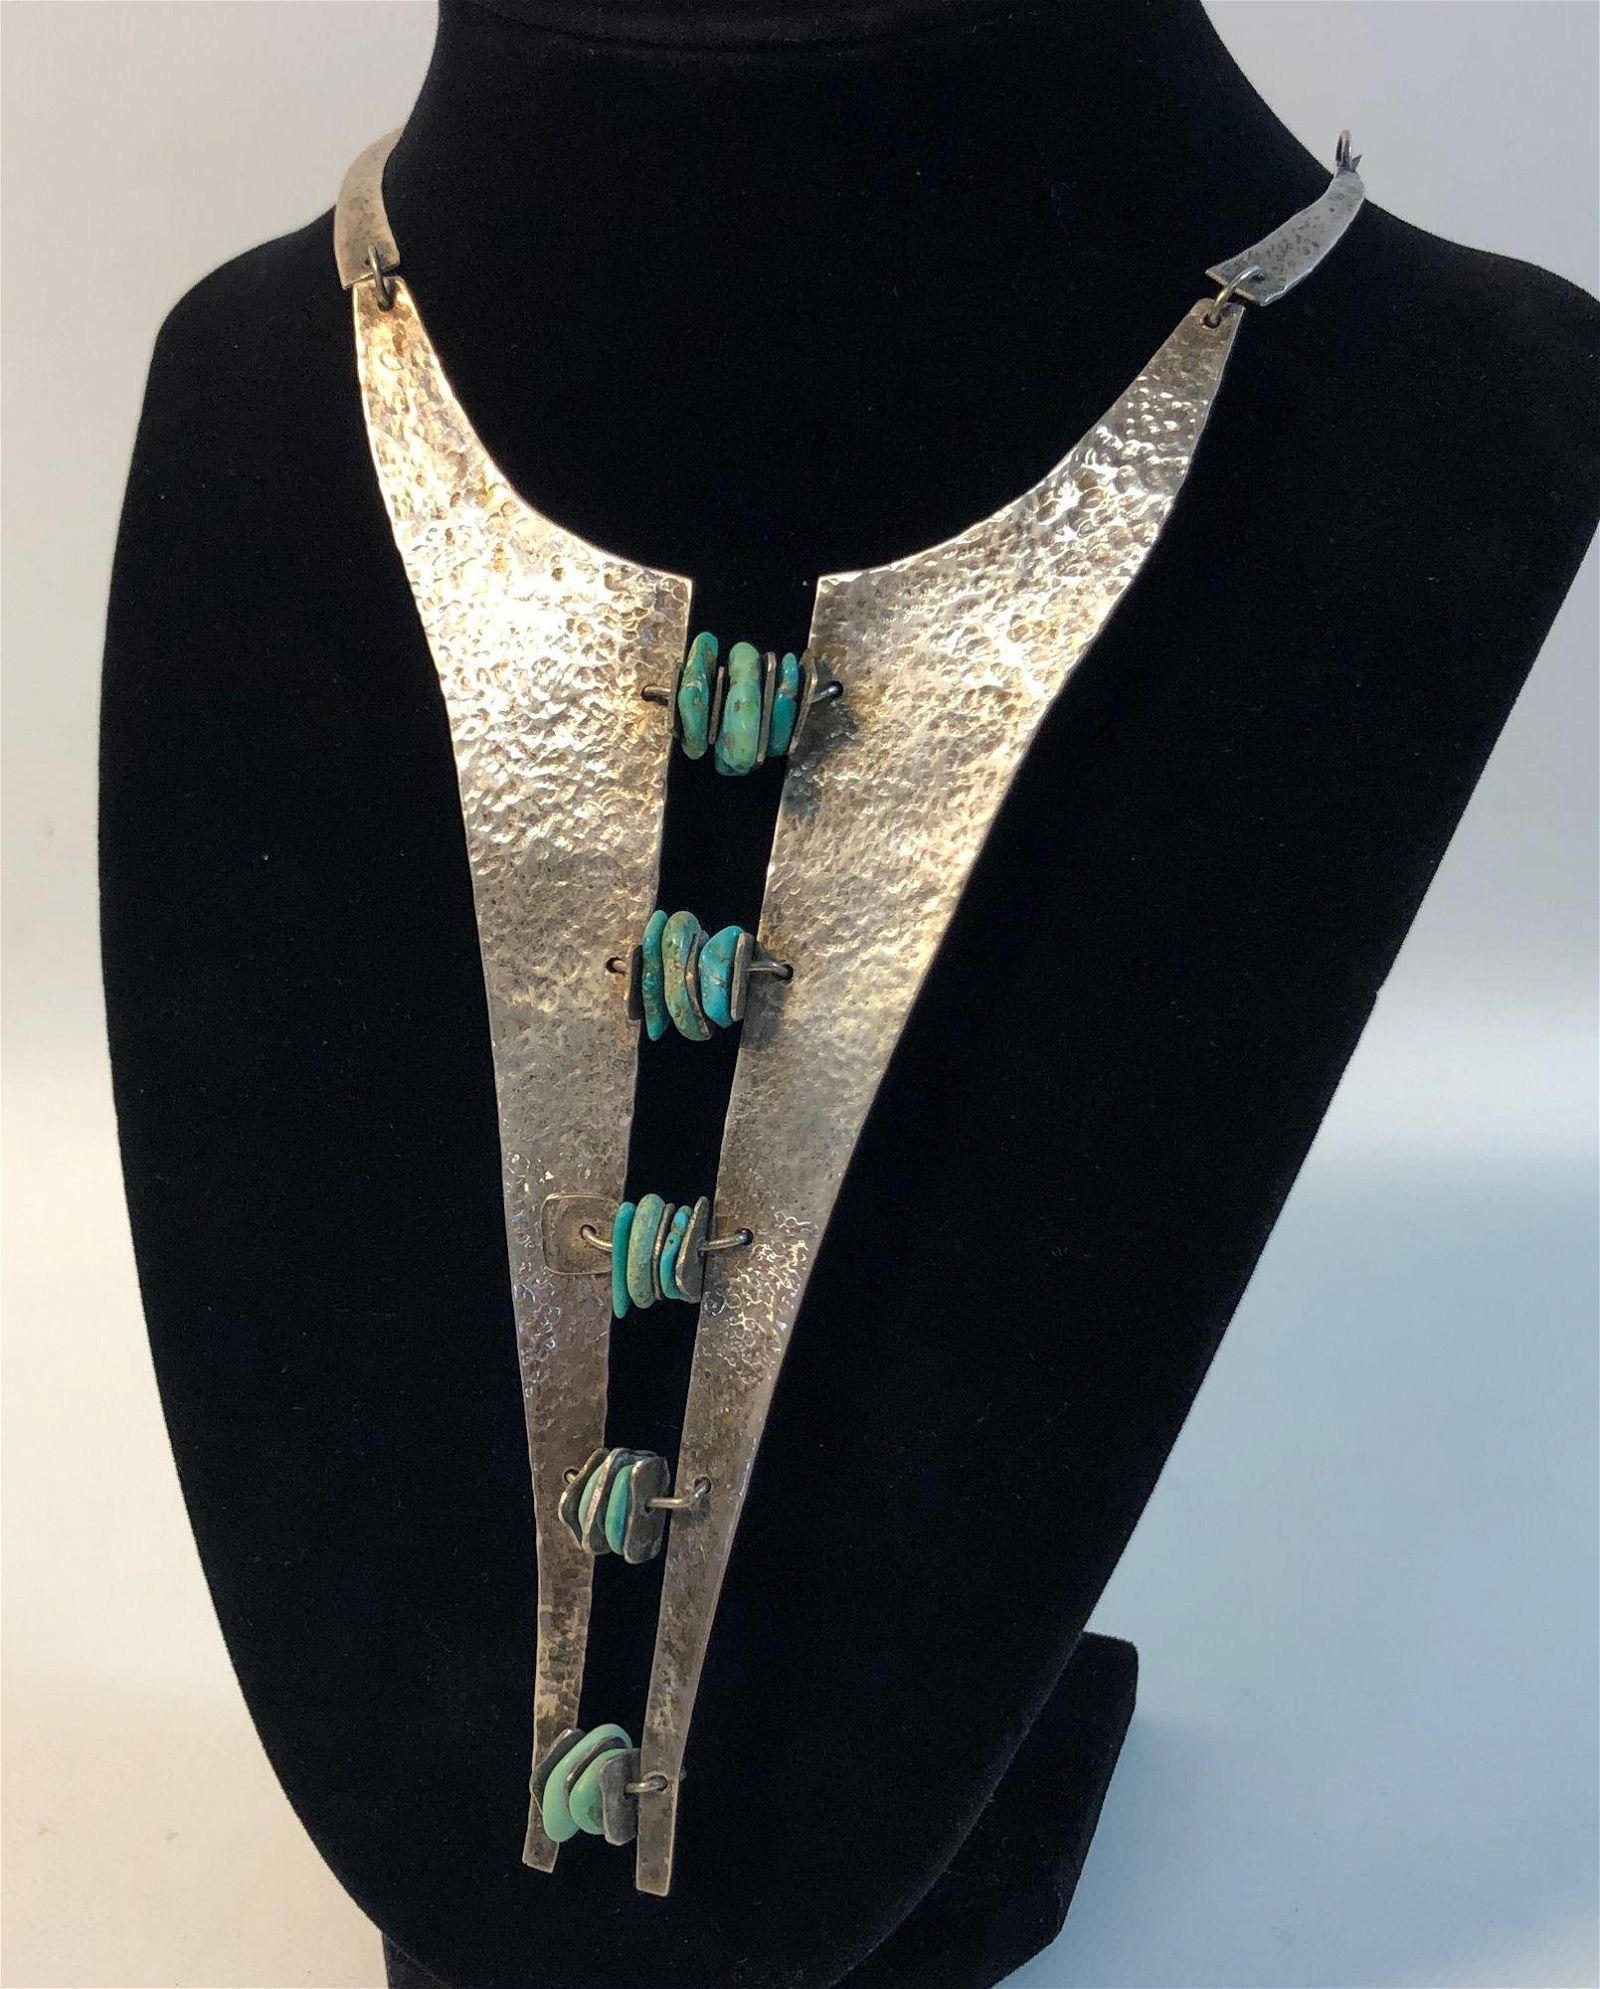 STERLING SILVER & TURQUOISE STATEMENT NECKLACE